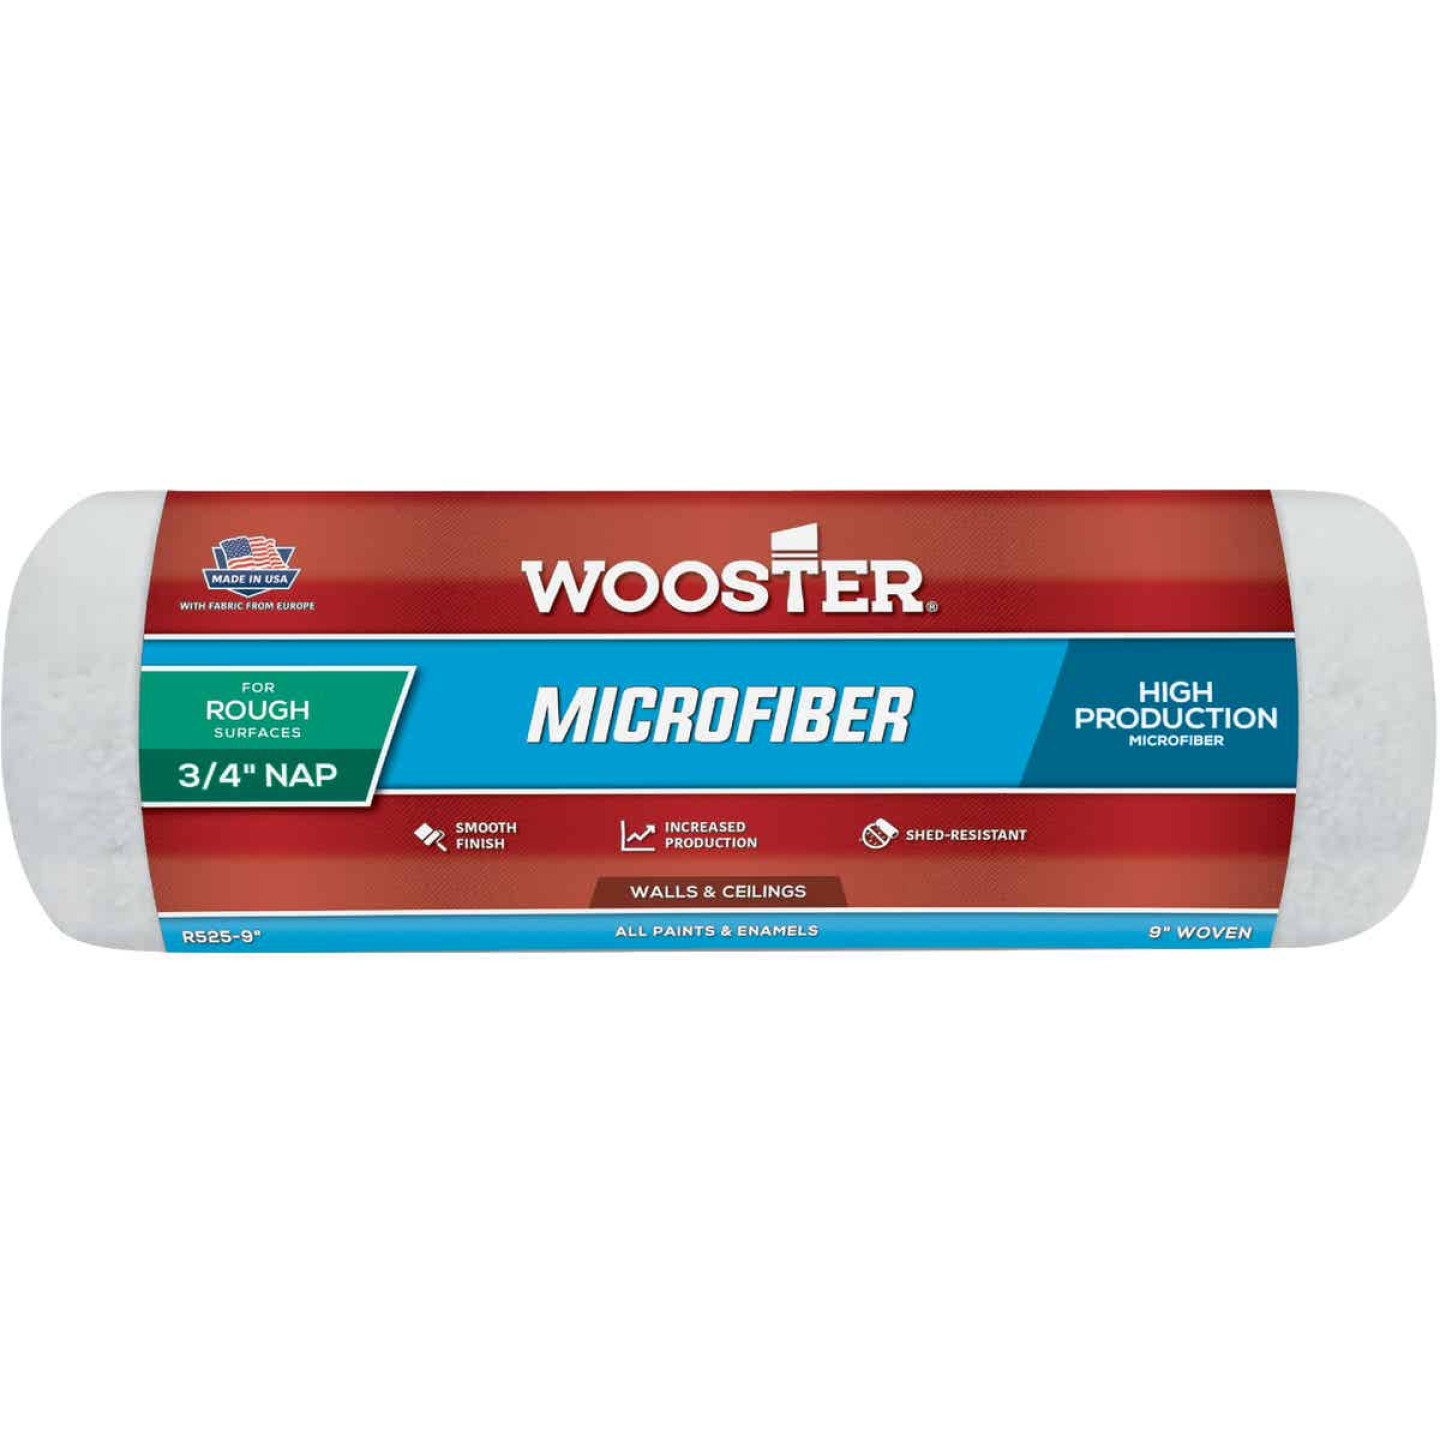 Wooster 9 In. x 3/4 In. Microfiber Roller Cover Image 1